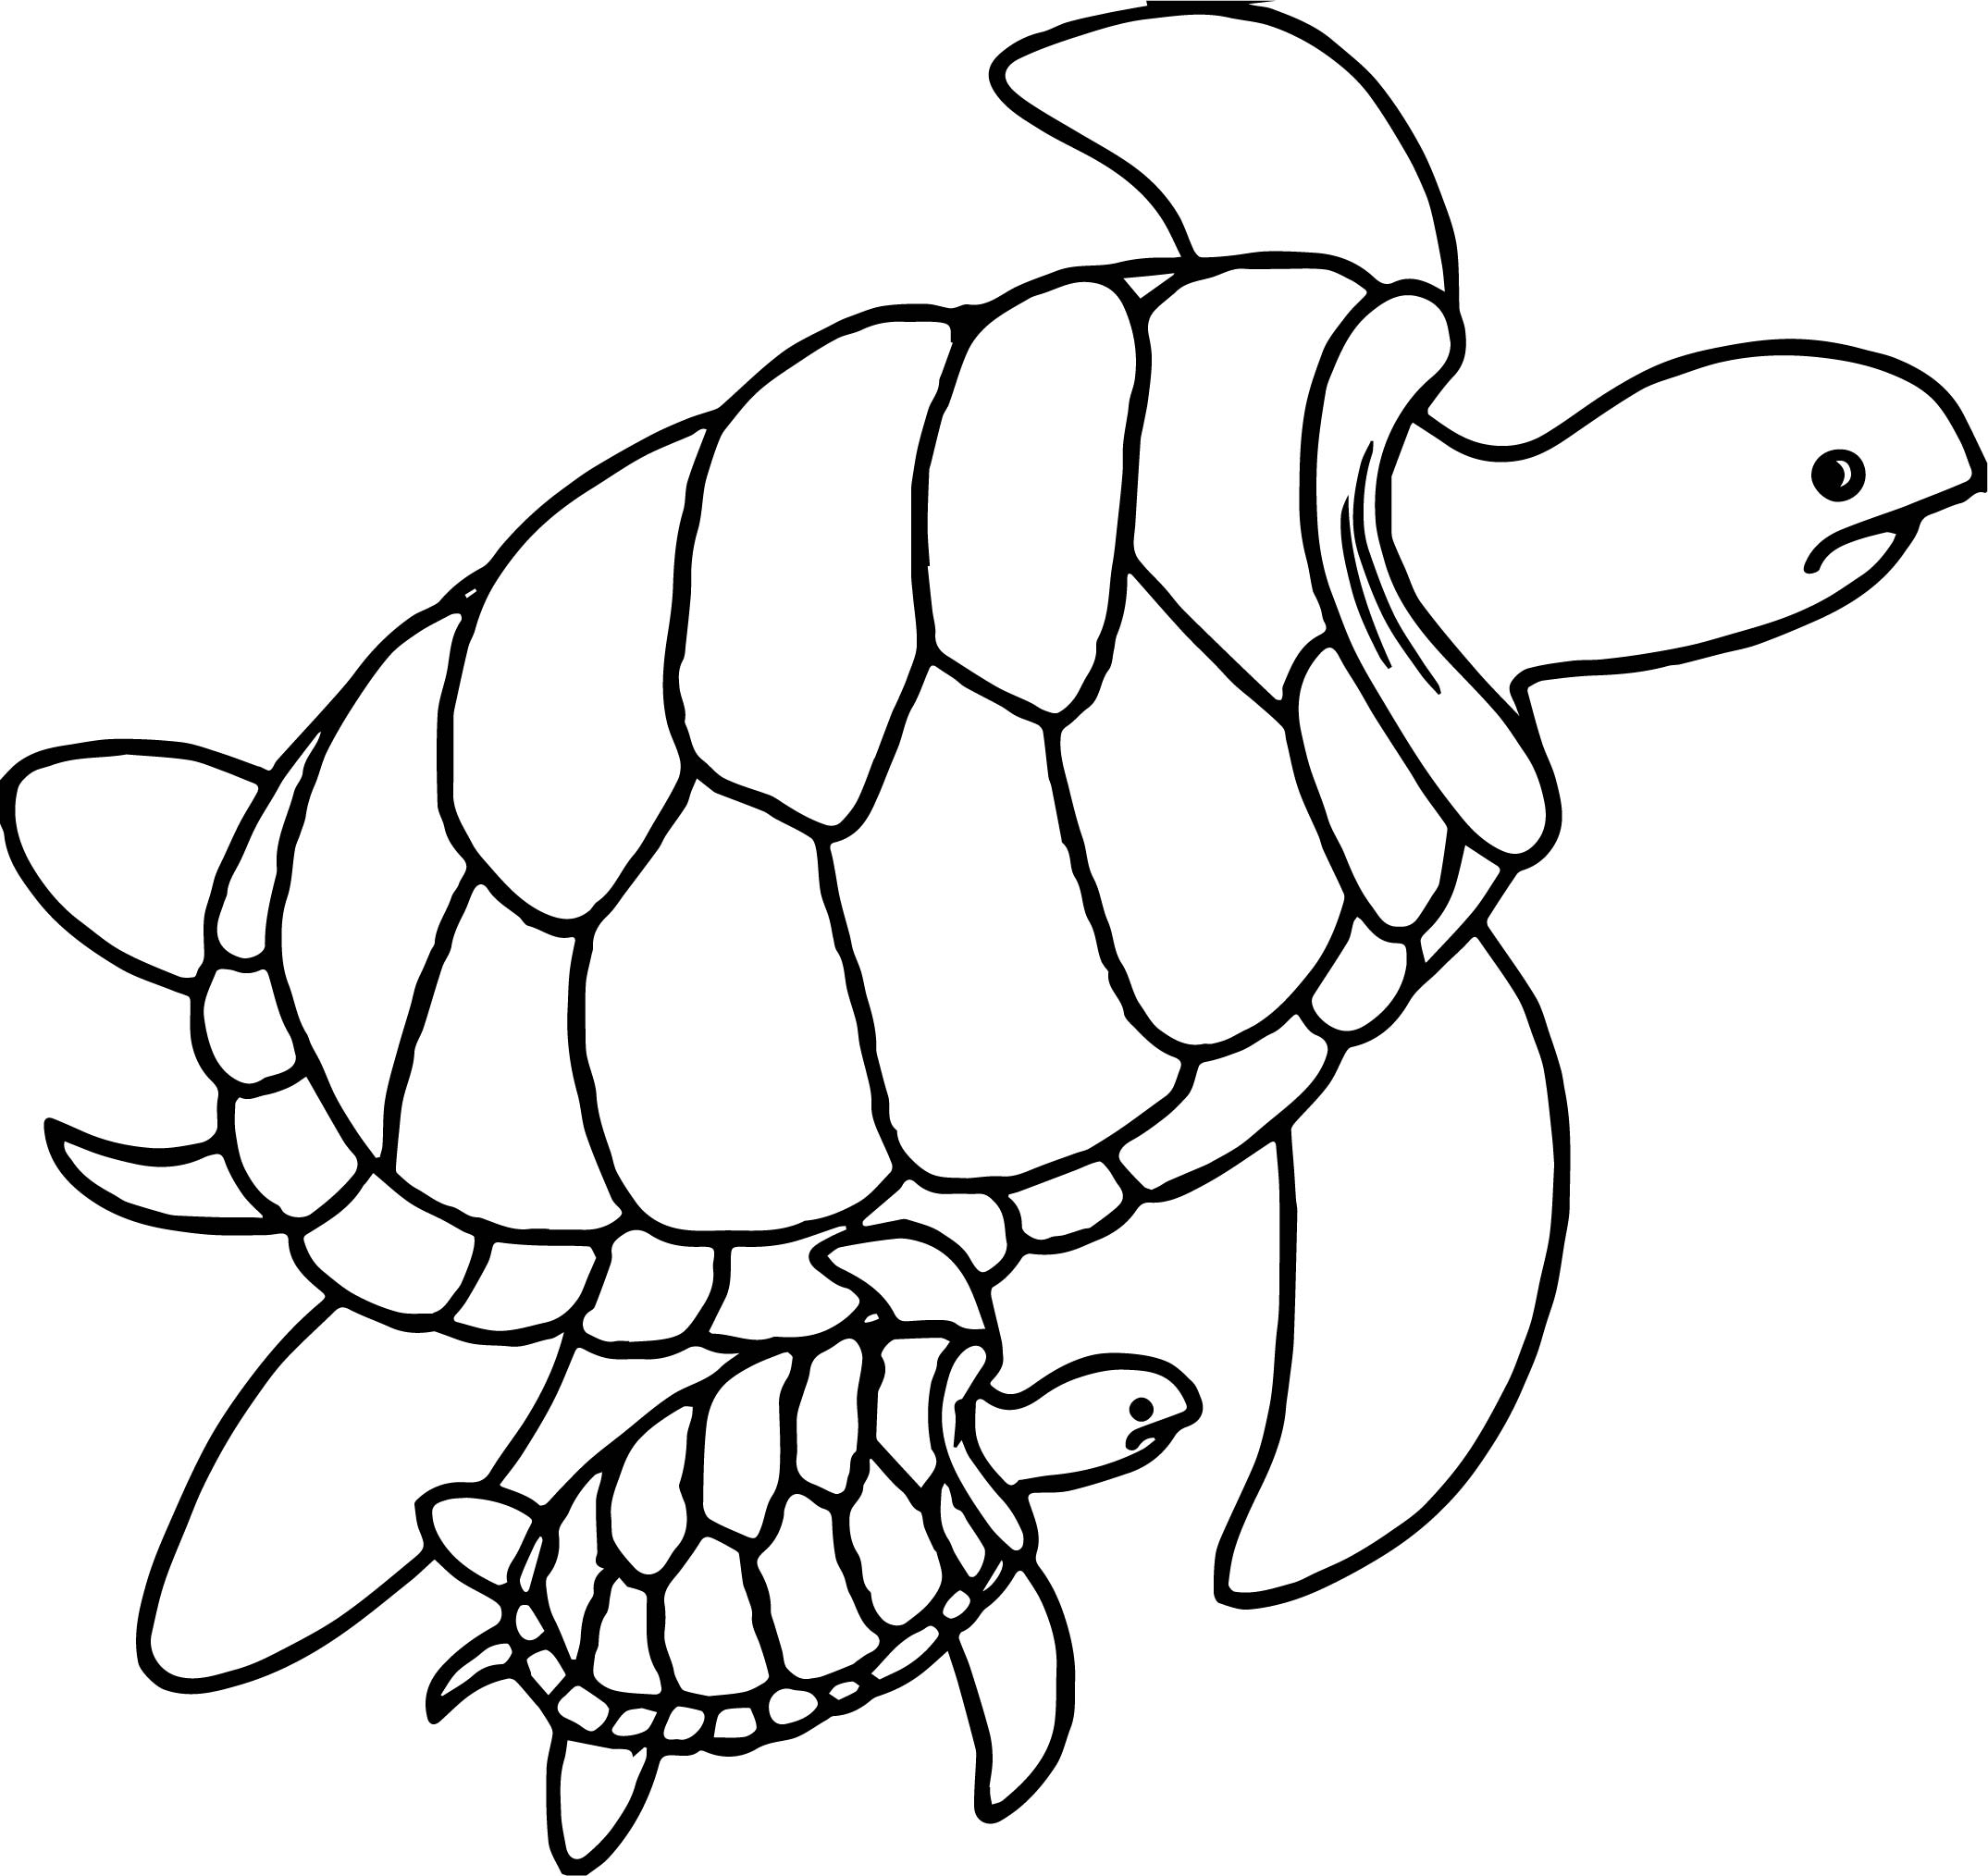 Turtle Images Drawing At Getdrawings